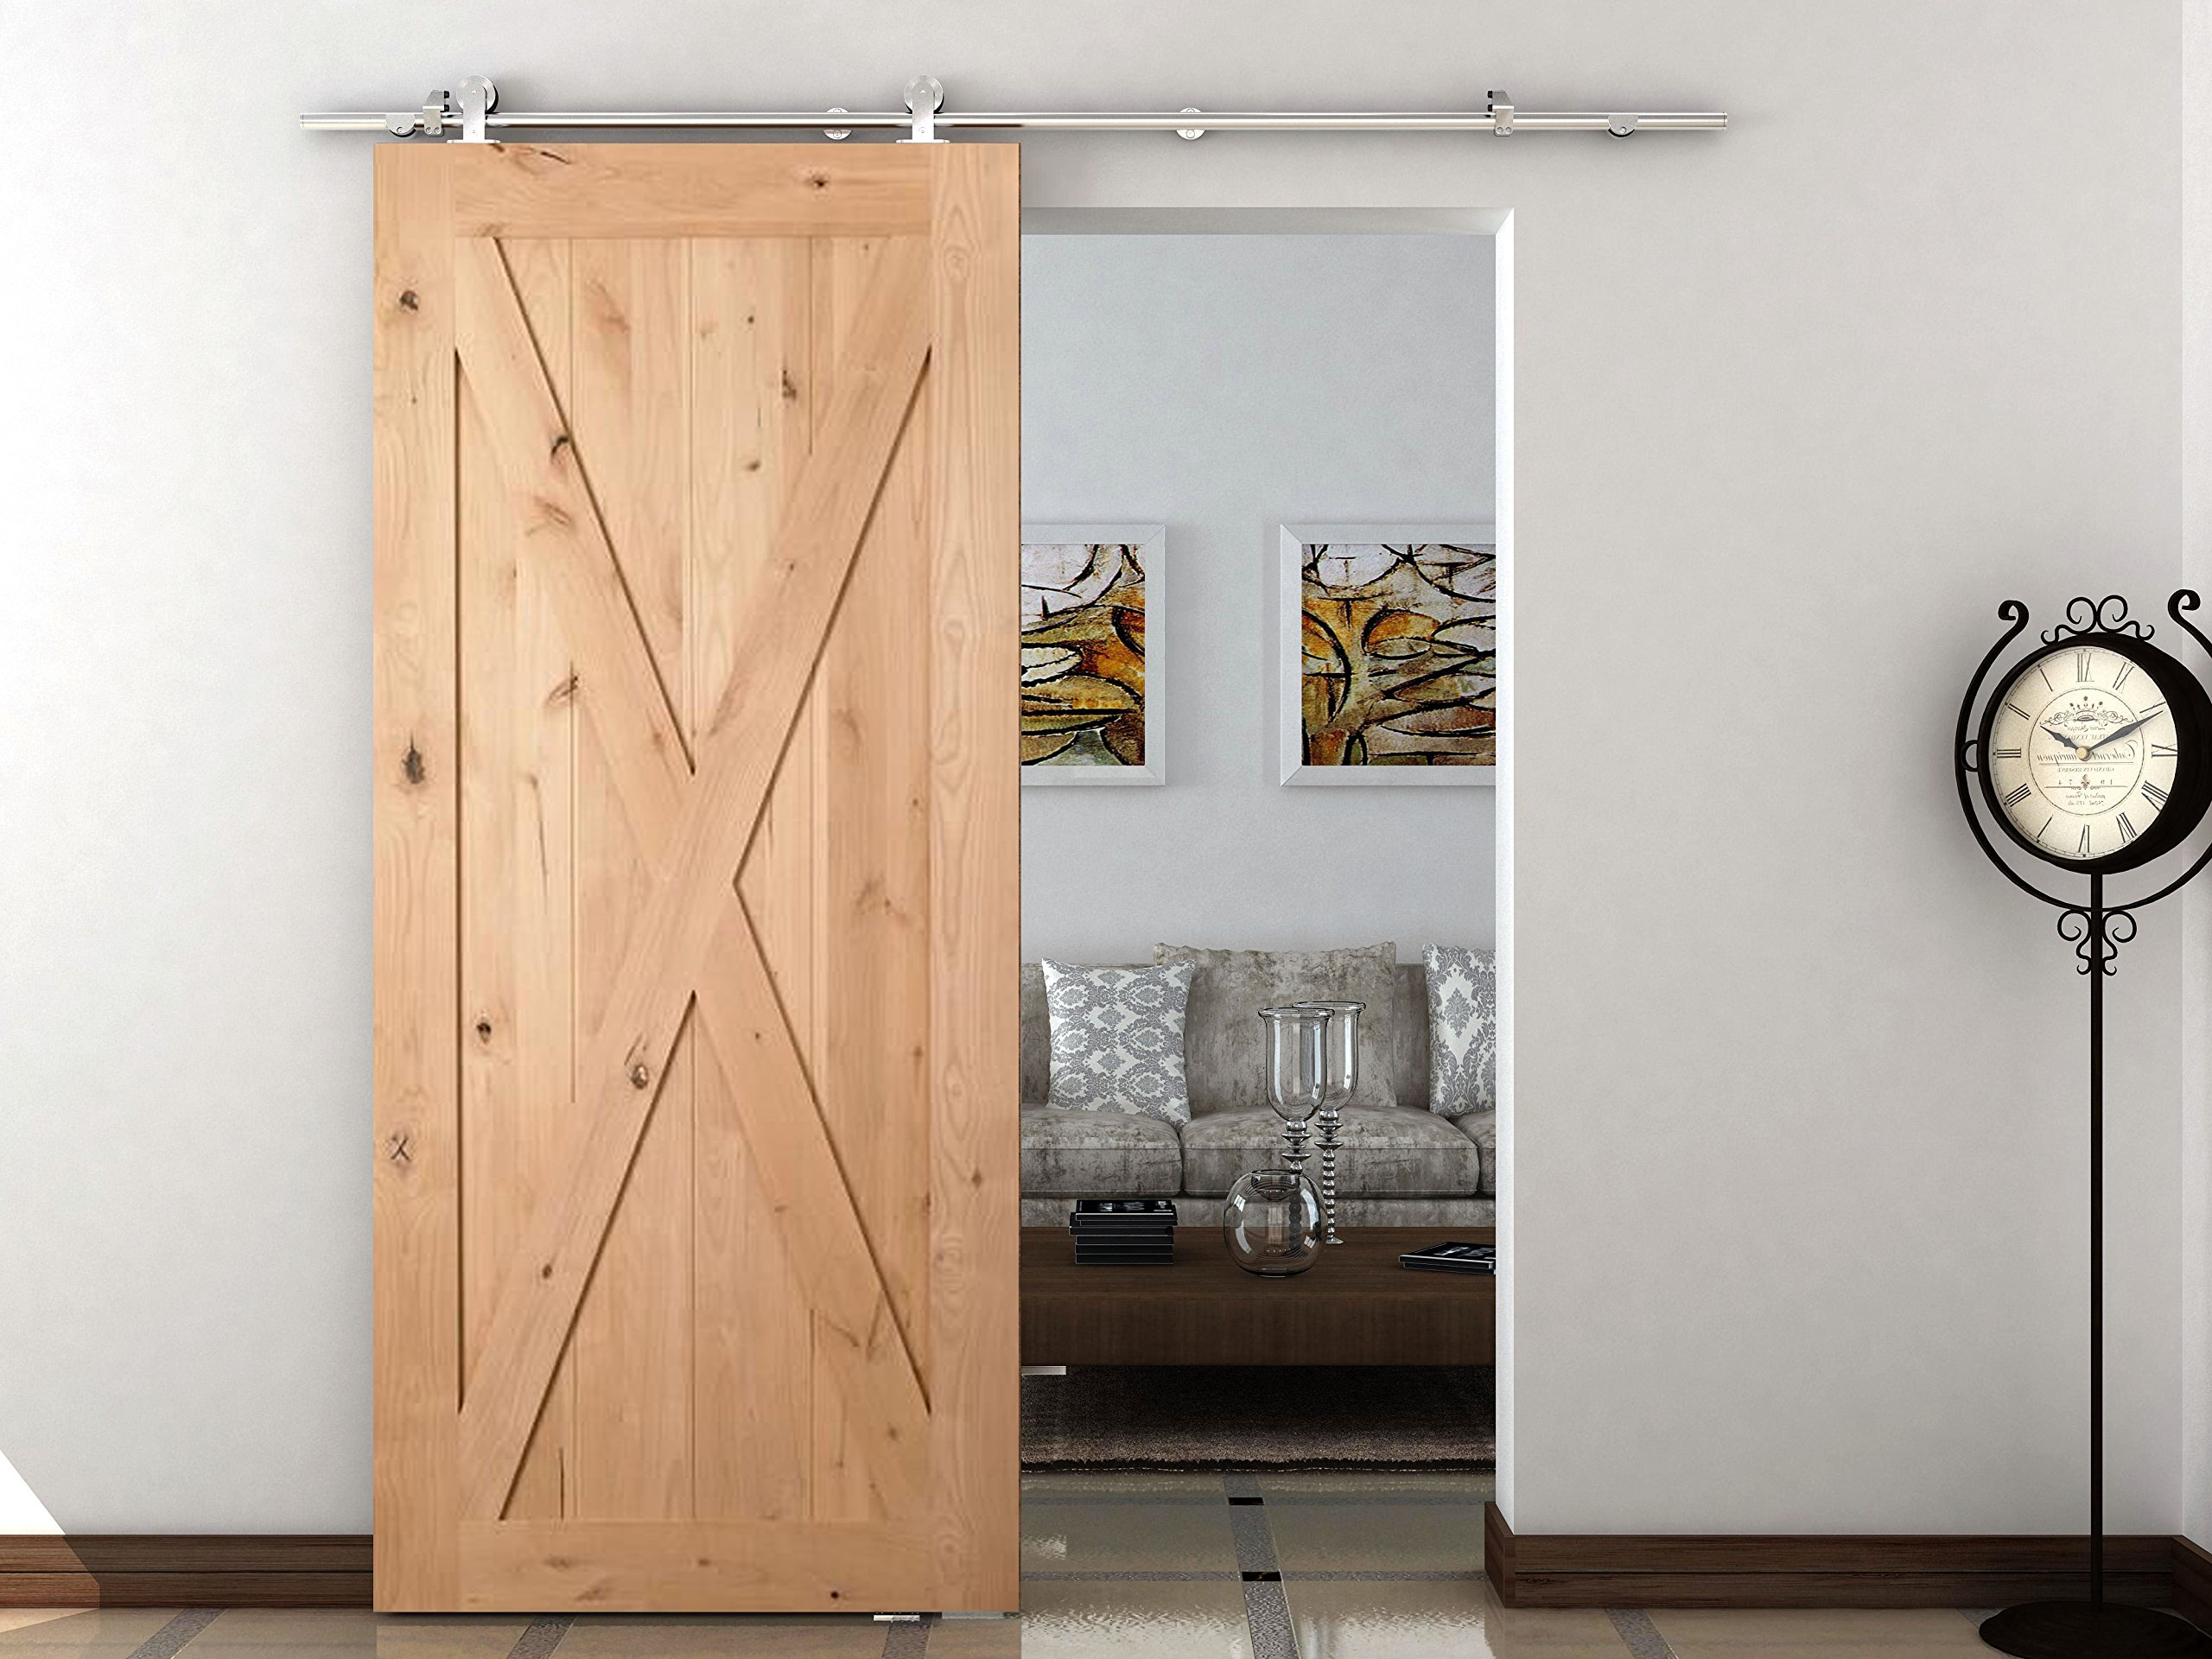 DIYHD 5FT Stainless Steel Top Mounted Sliding Barn Wood Door Closet Door Sliding Track Hardware Safety Pin Hanger Barn Door Sliding Kit-Can work with 16'' apart studs wall by DIYHD (Image #1)